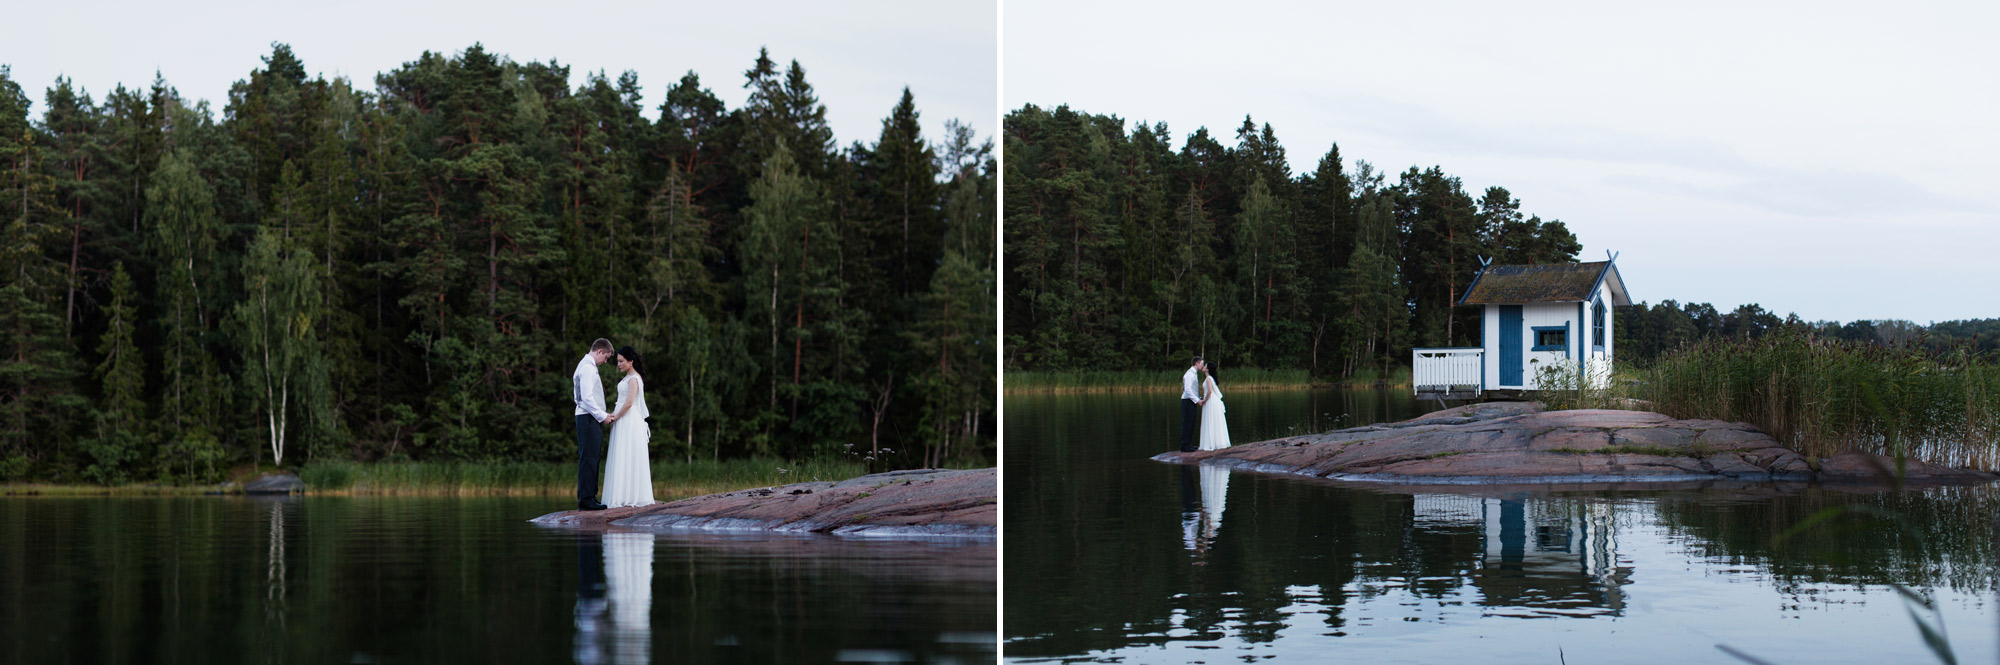 wedding portraits at twilight sweden